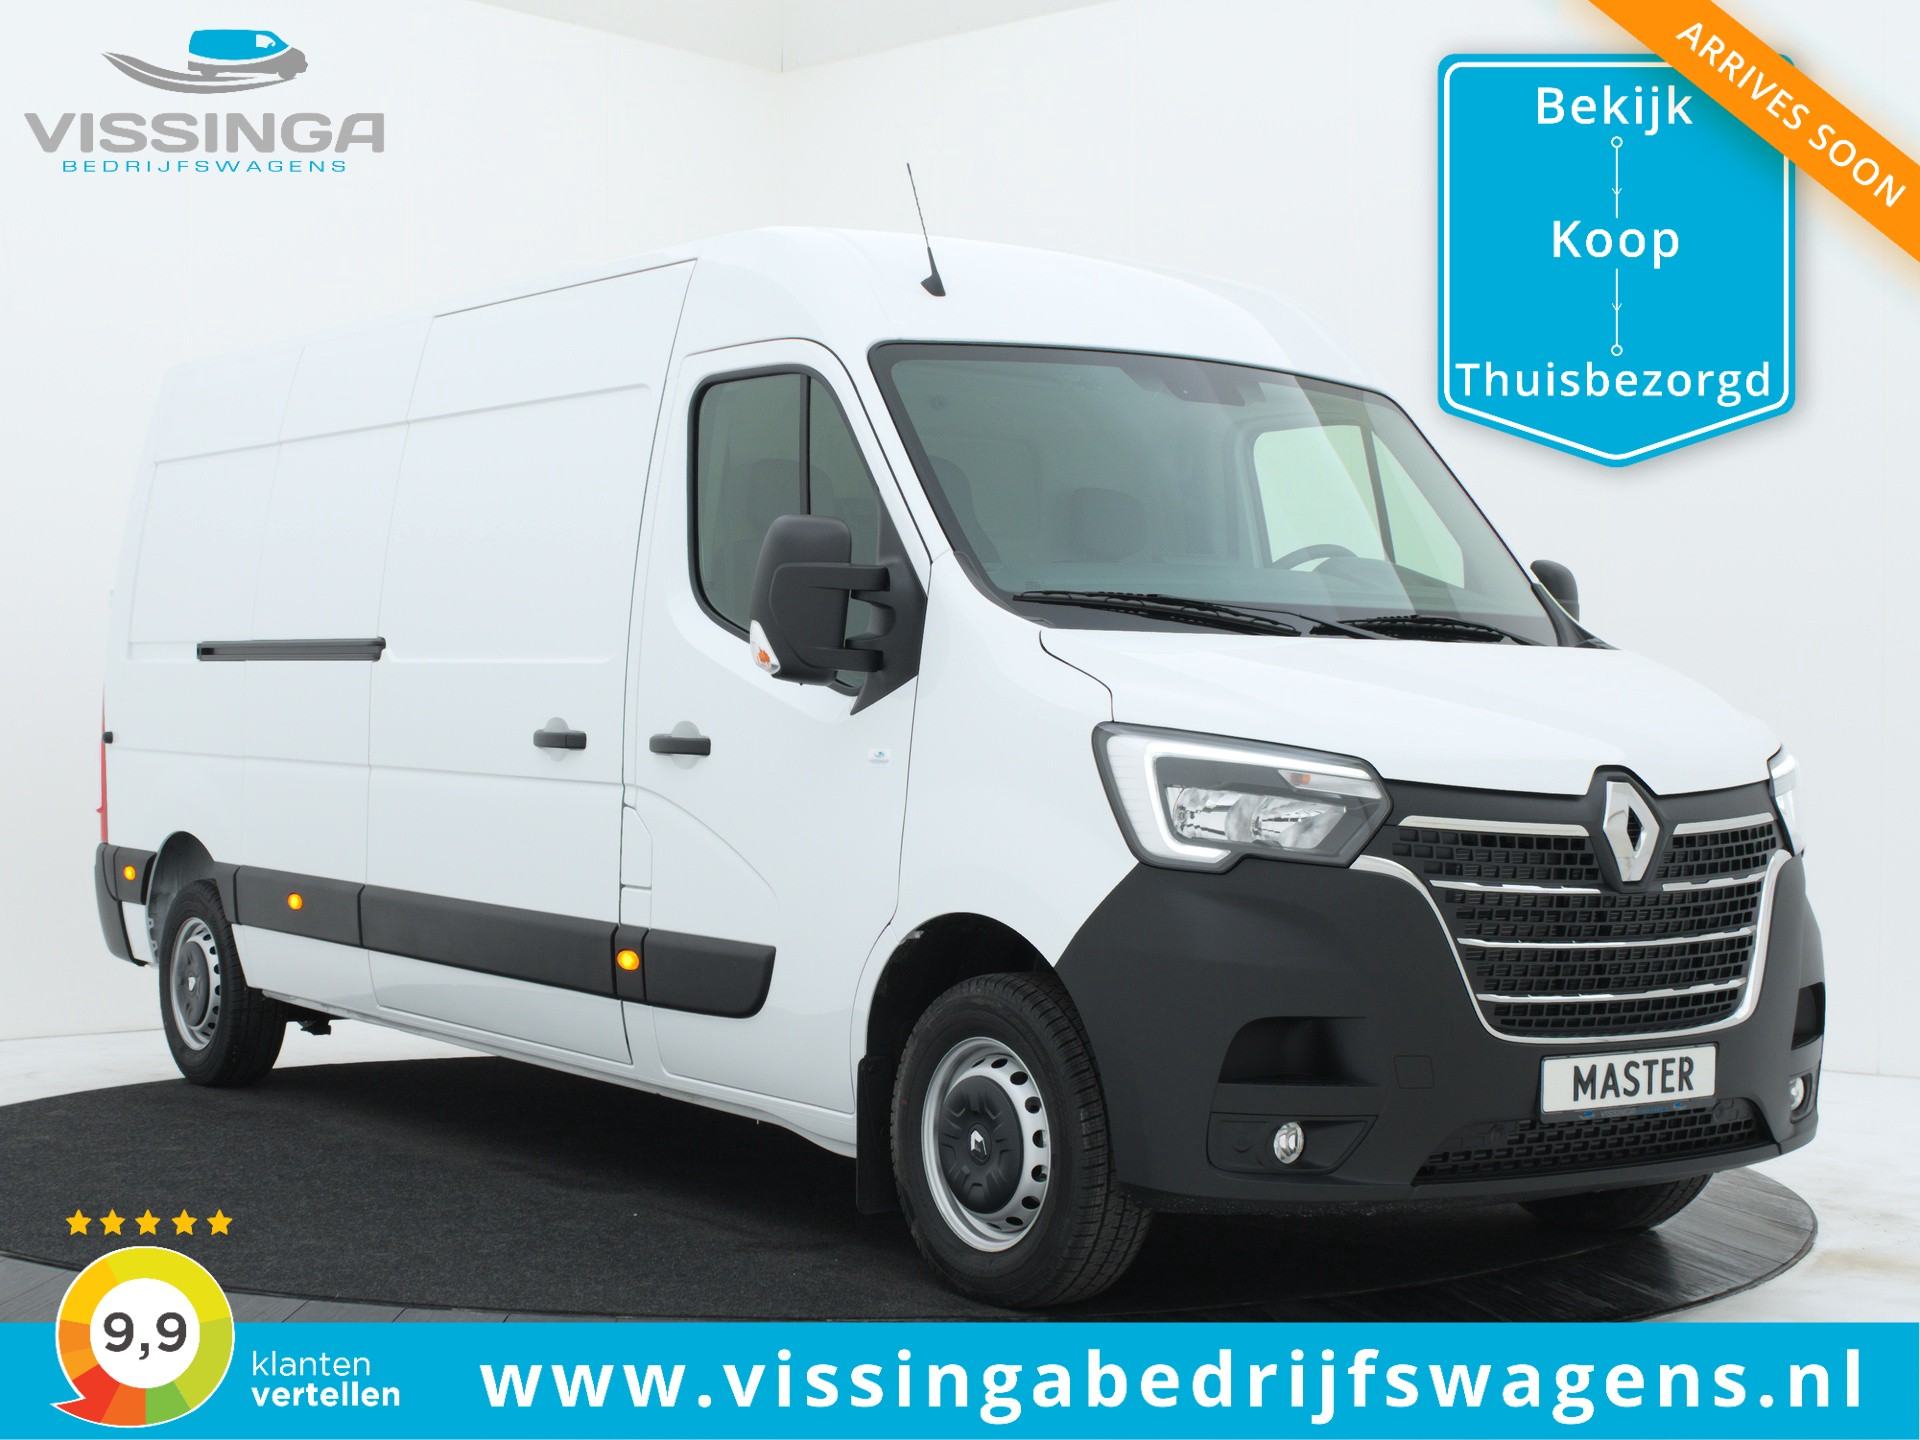 Renault Master T35 2.3 dCi L3H2 135 pk Twin-Turbo